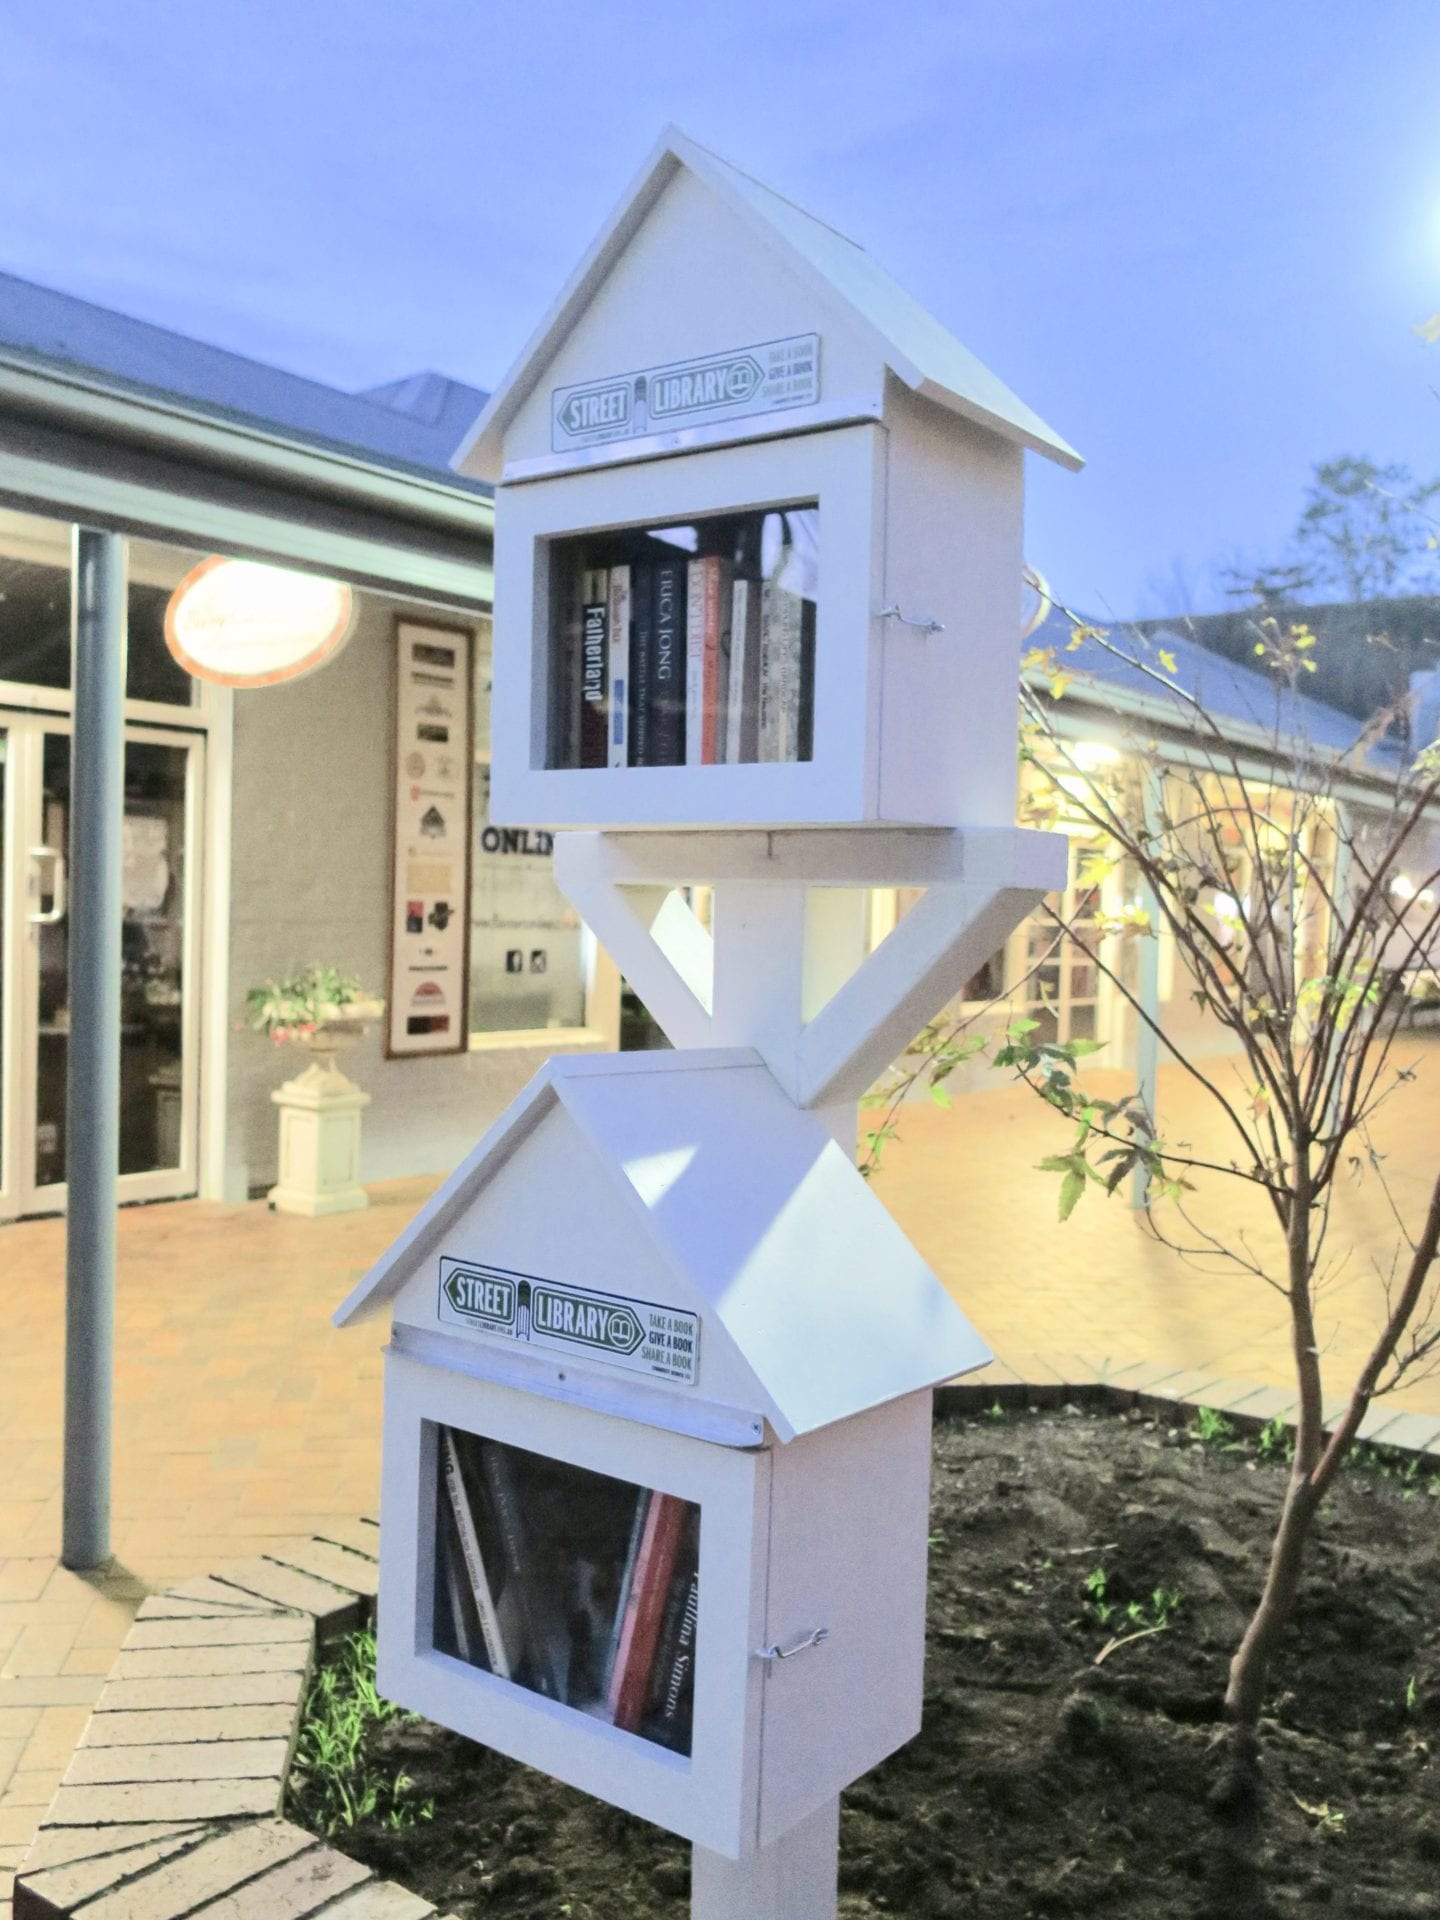 Berry Alliance Street Library